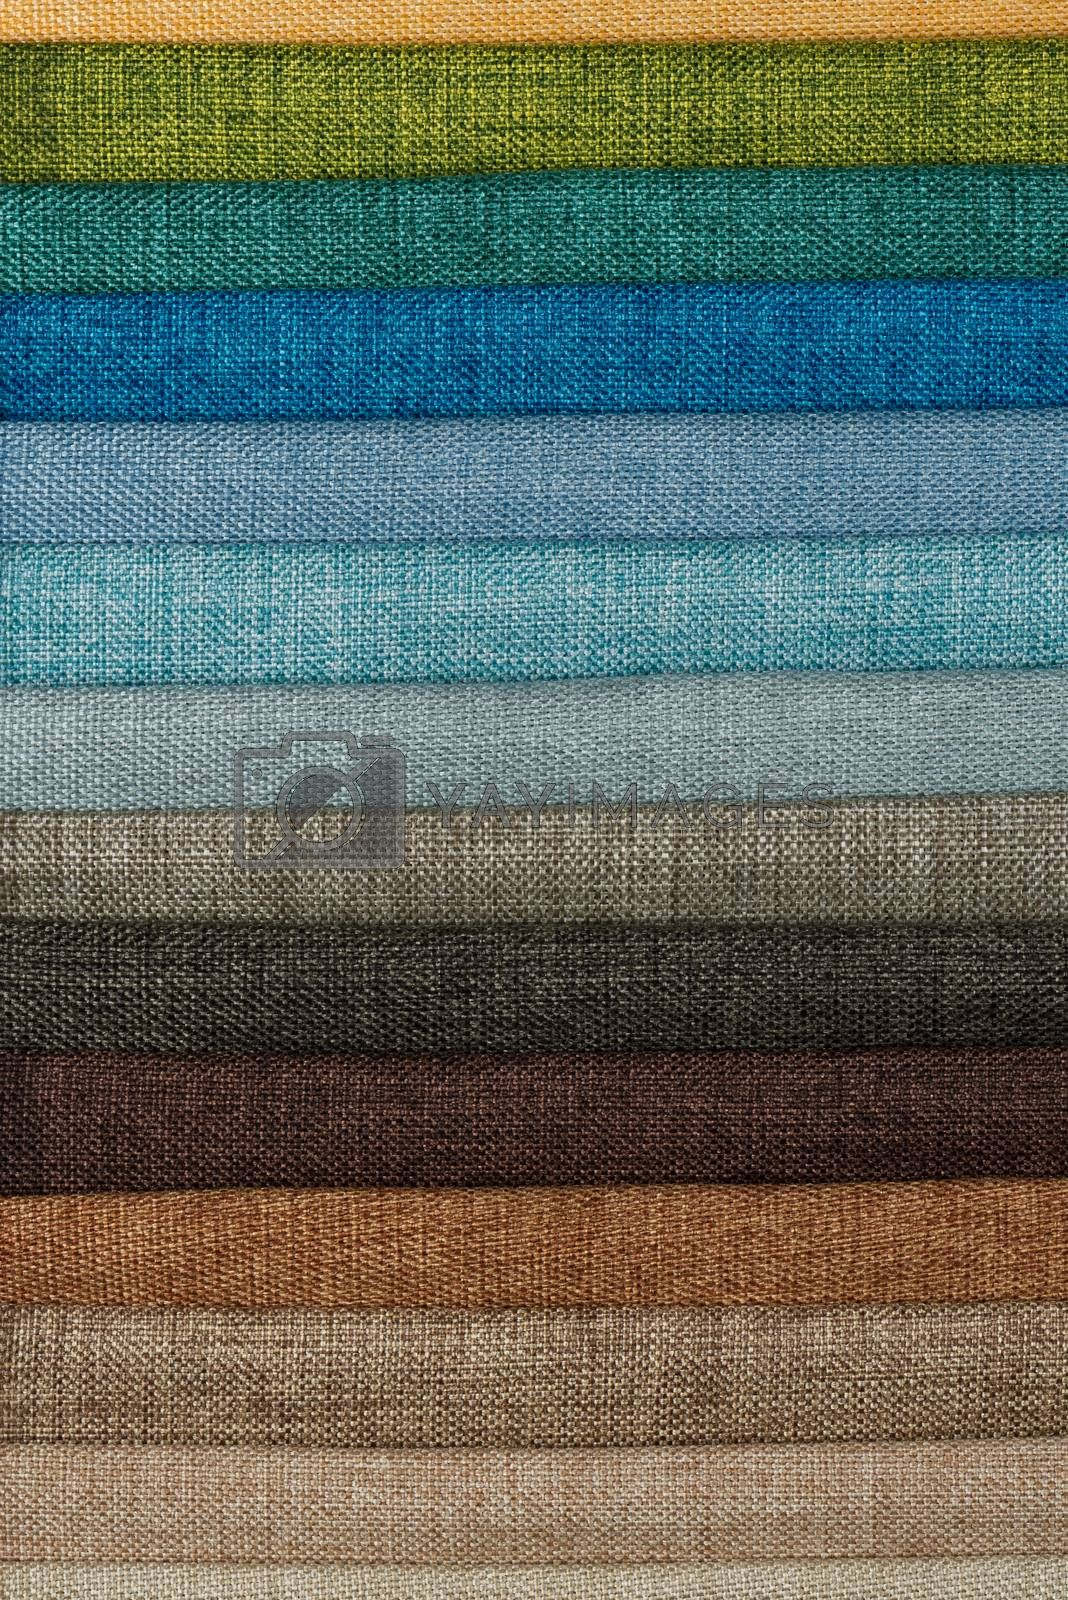 Royalty free image of Fabric samples by homydesign